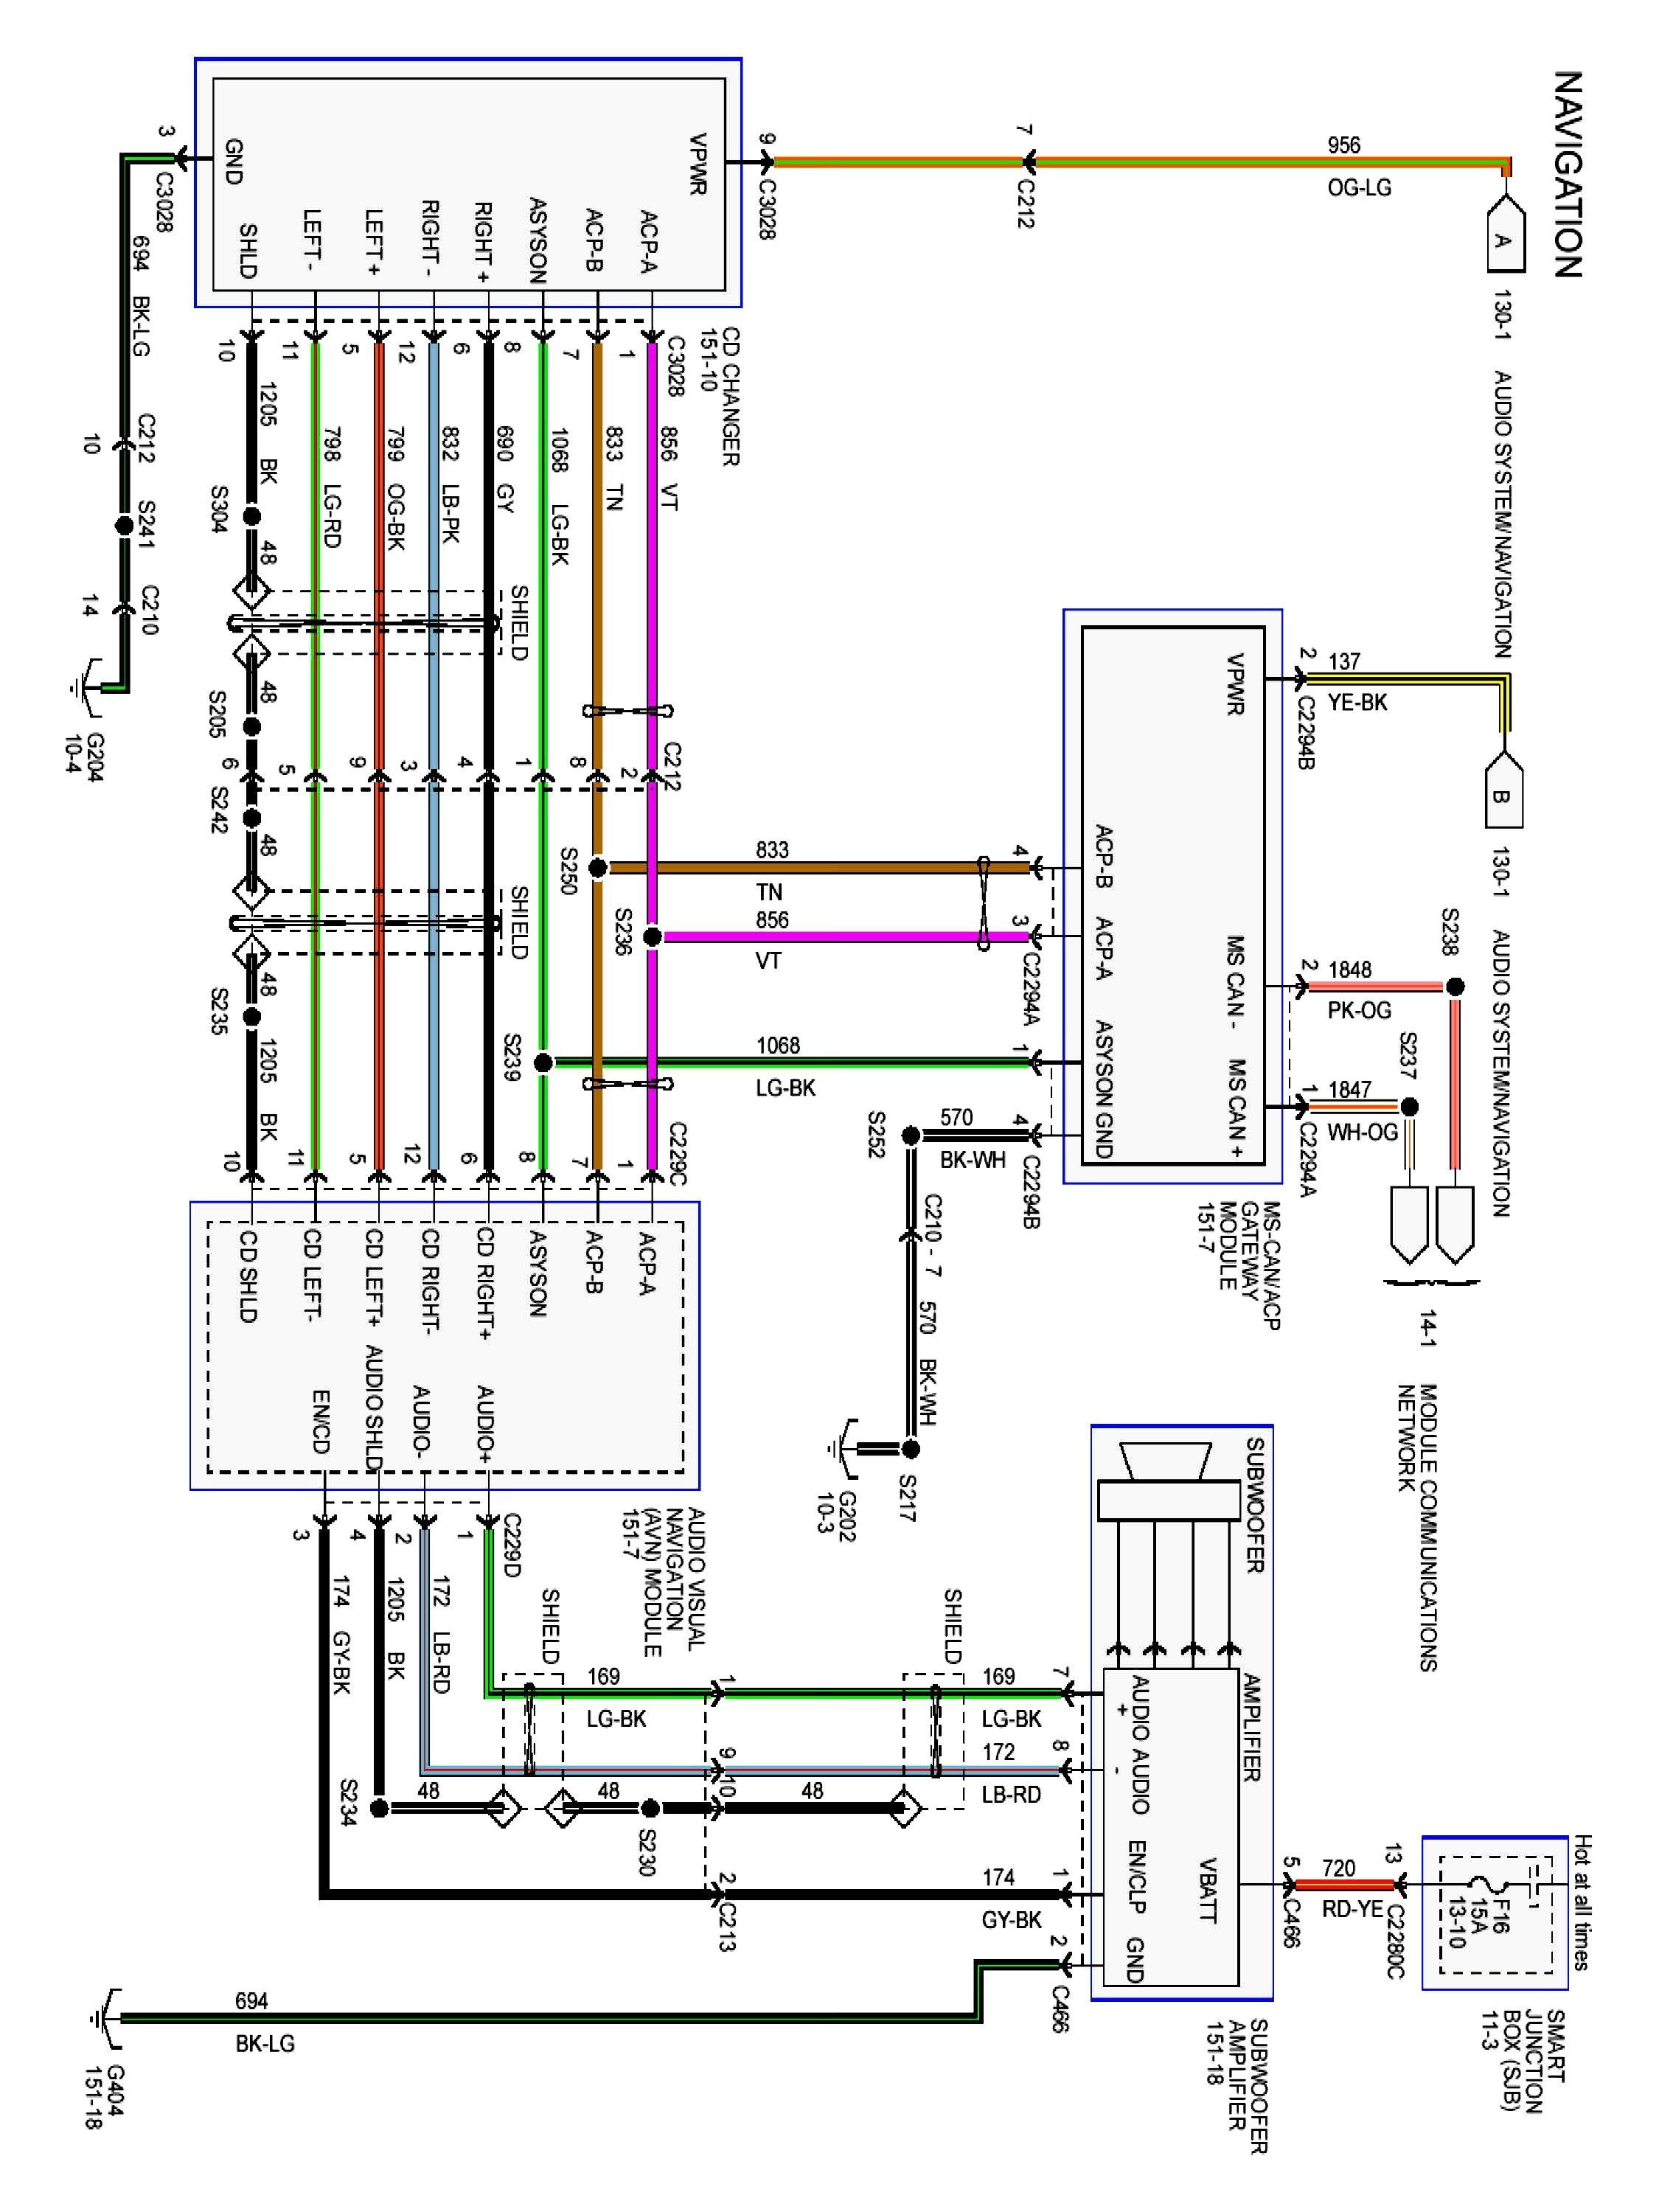 2005 F250 Wire Diagram - Data Wiring Diagram Schematic - Ford Trailer Wiring Diagram